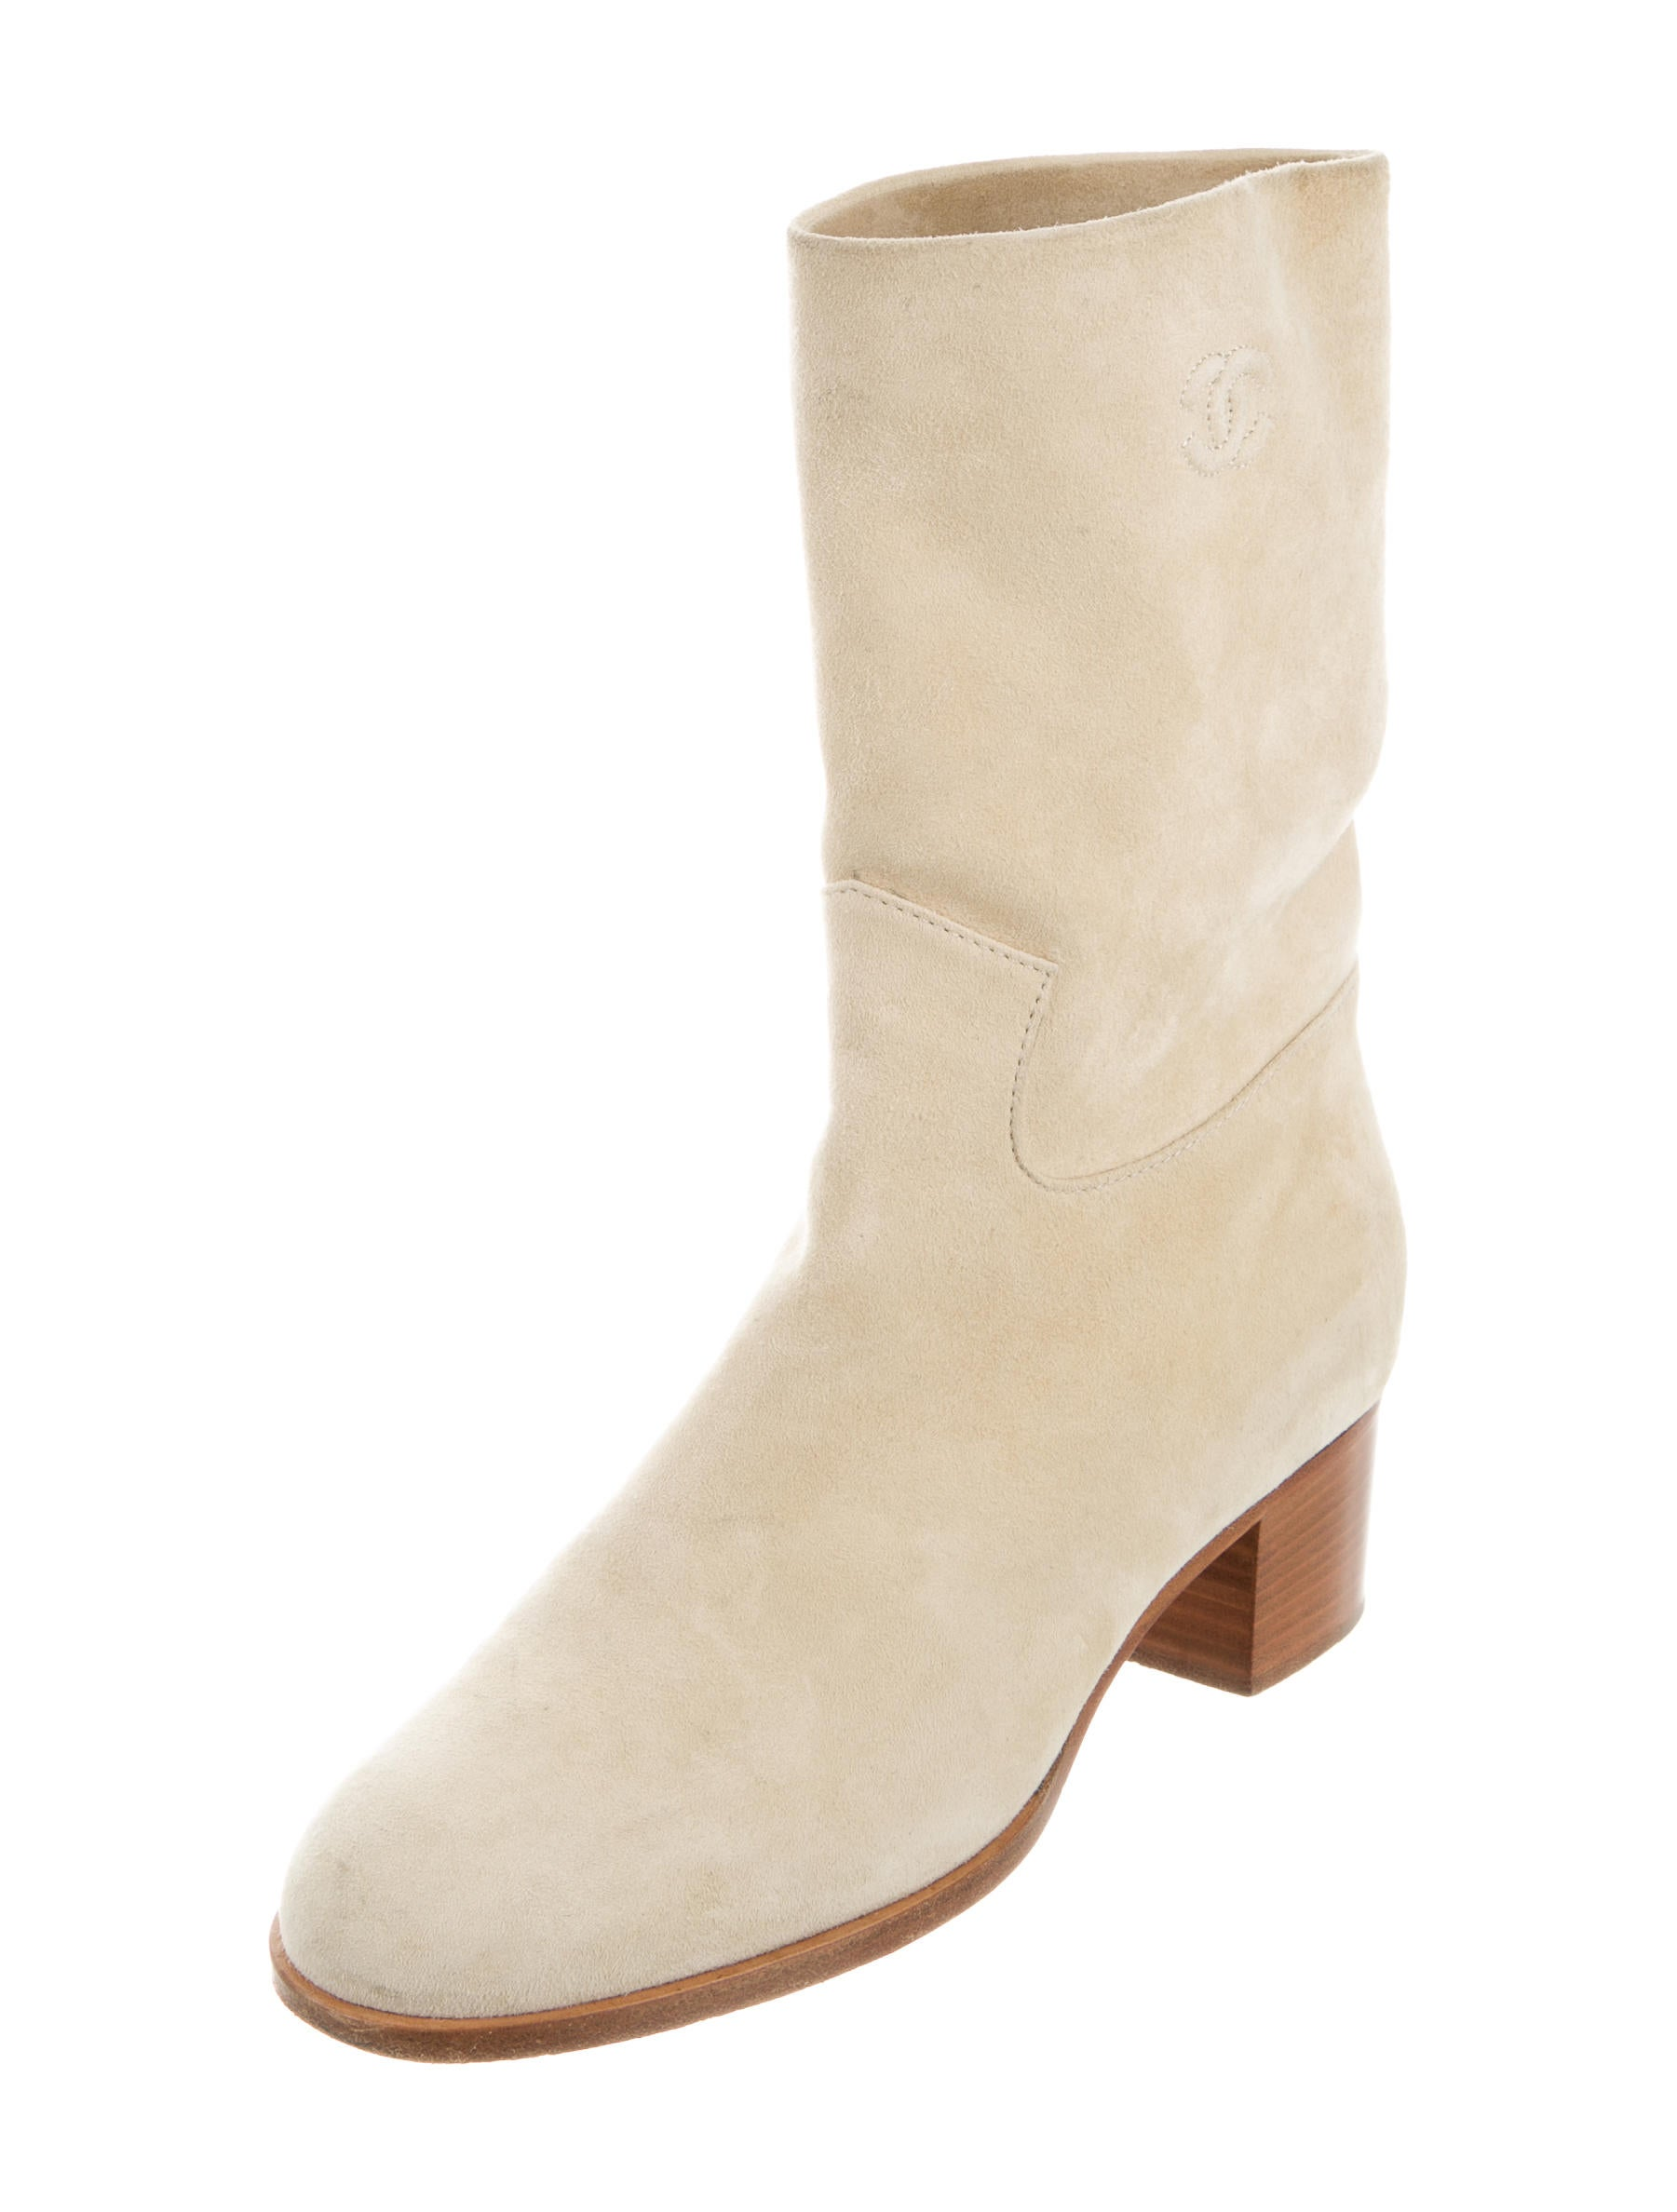 chanel suede mid calf boots shoes cha189217 the realreal